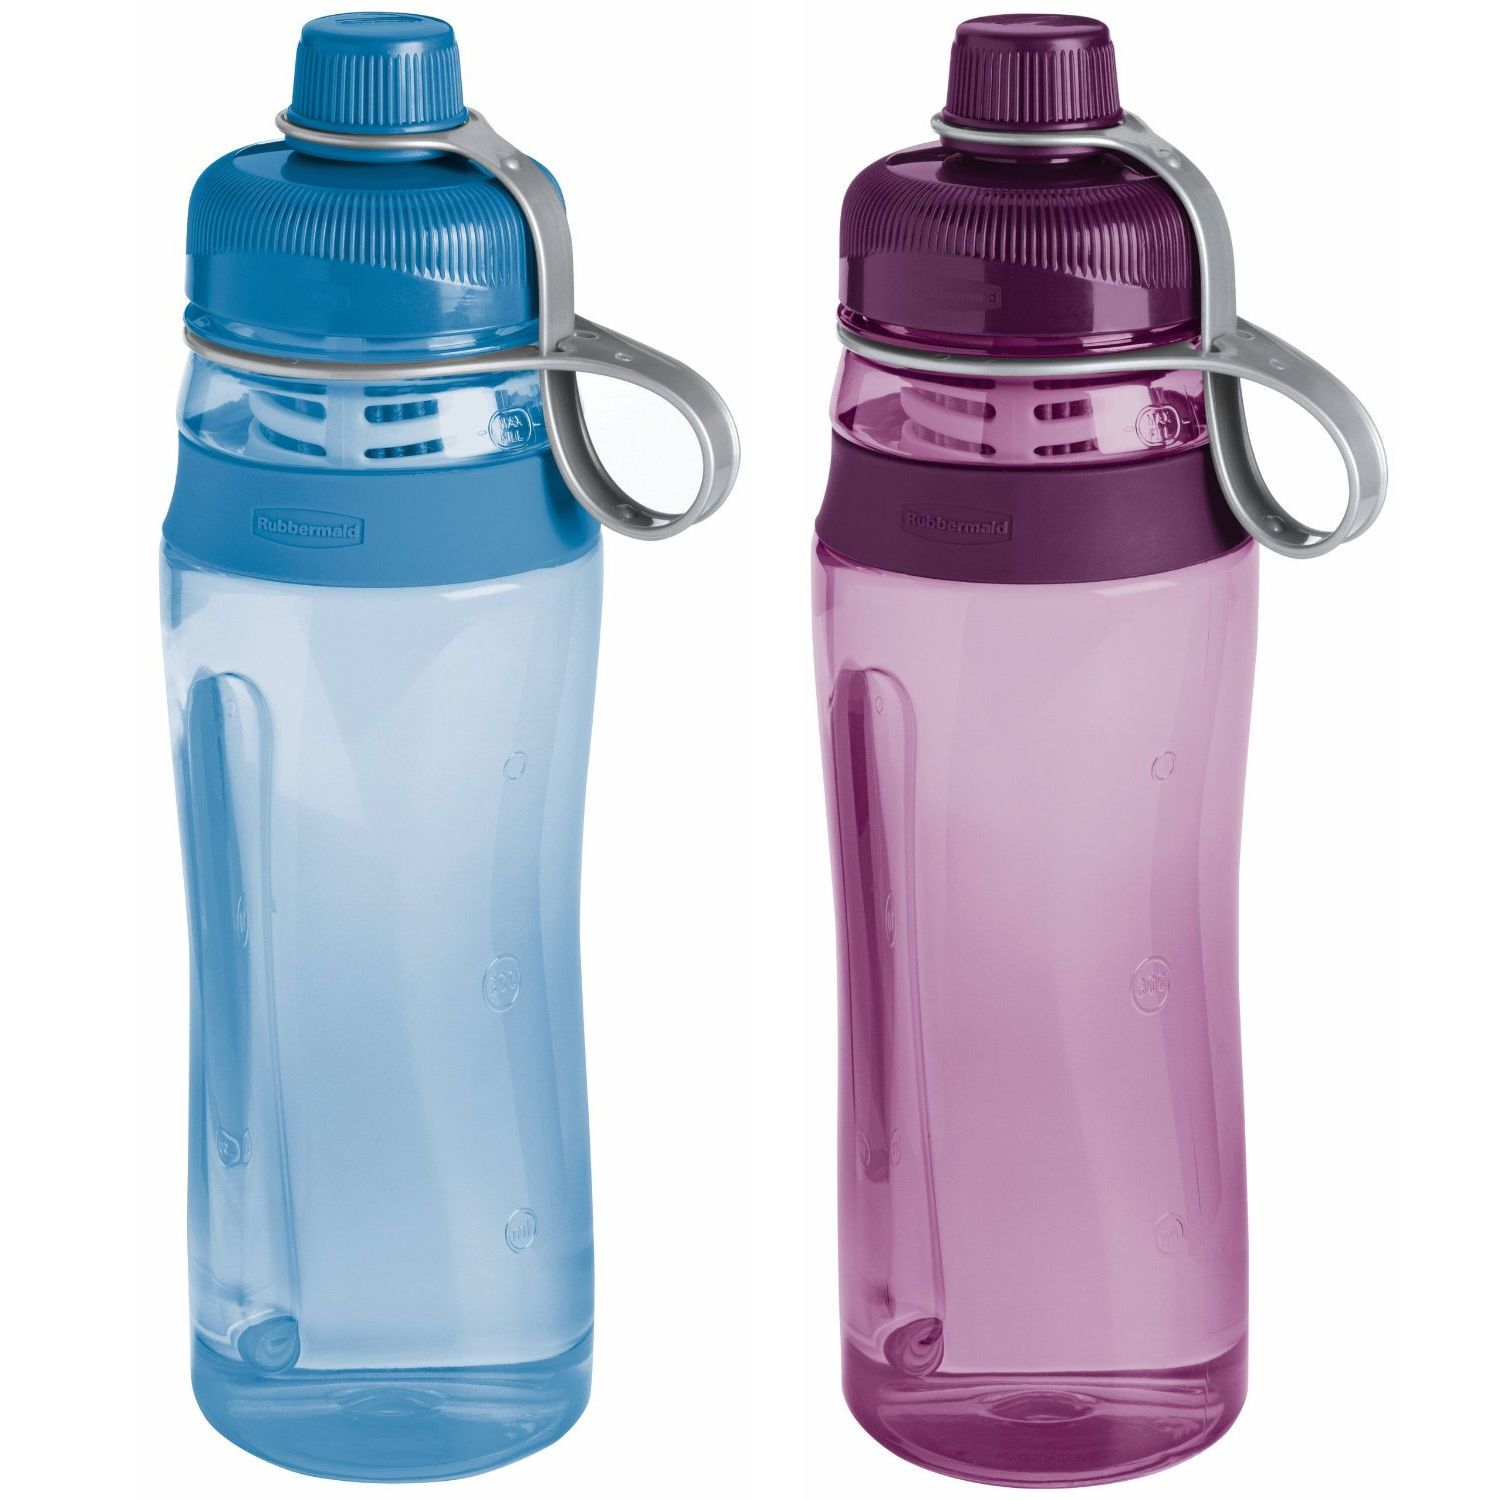 2 Pack Rubbermaid Sports Filtration Bottles in Purple and